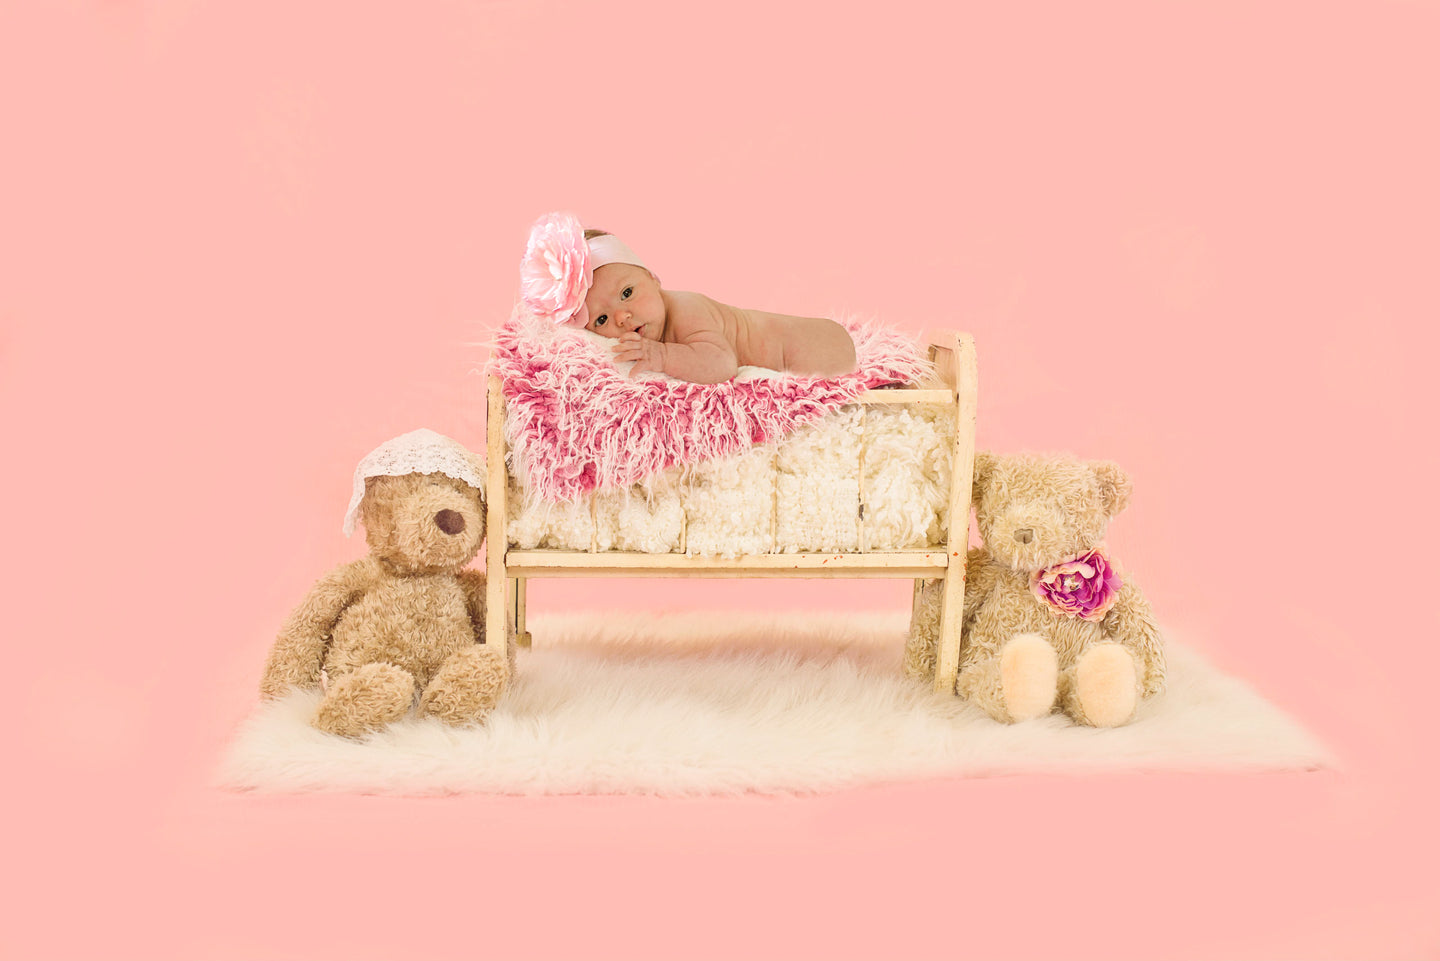 Baby in a Cradle with Teddy Bear - Tracy McCrackin Photography